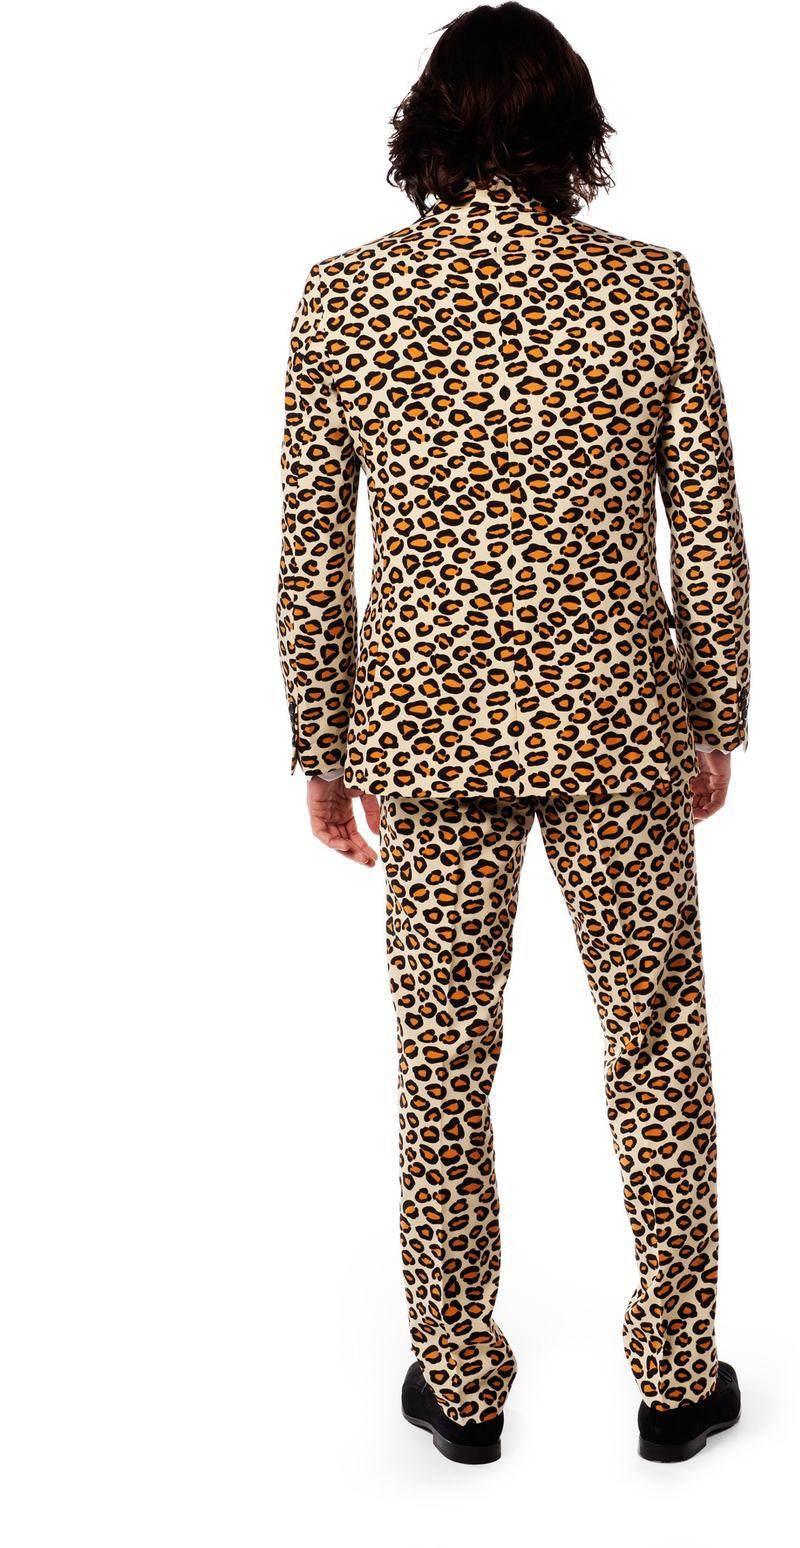 OppoSuits The Jag Suit photo 1